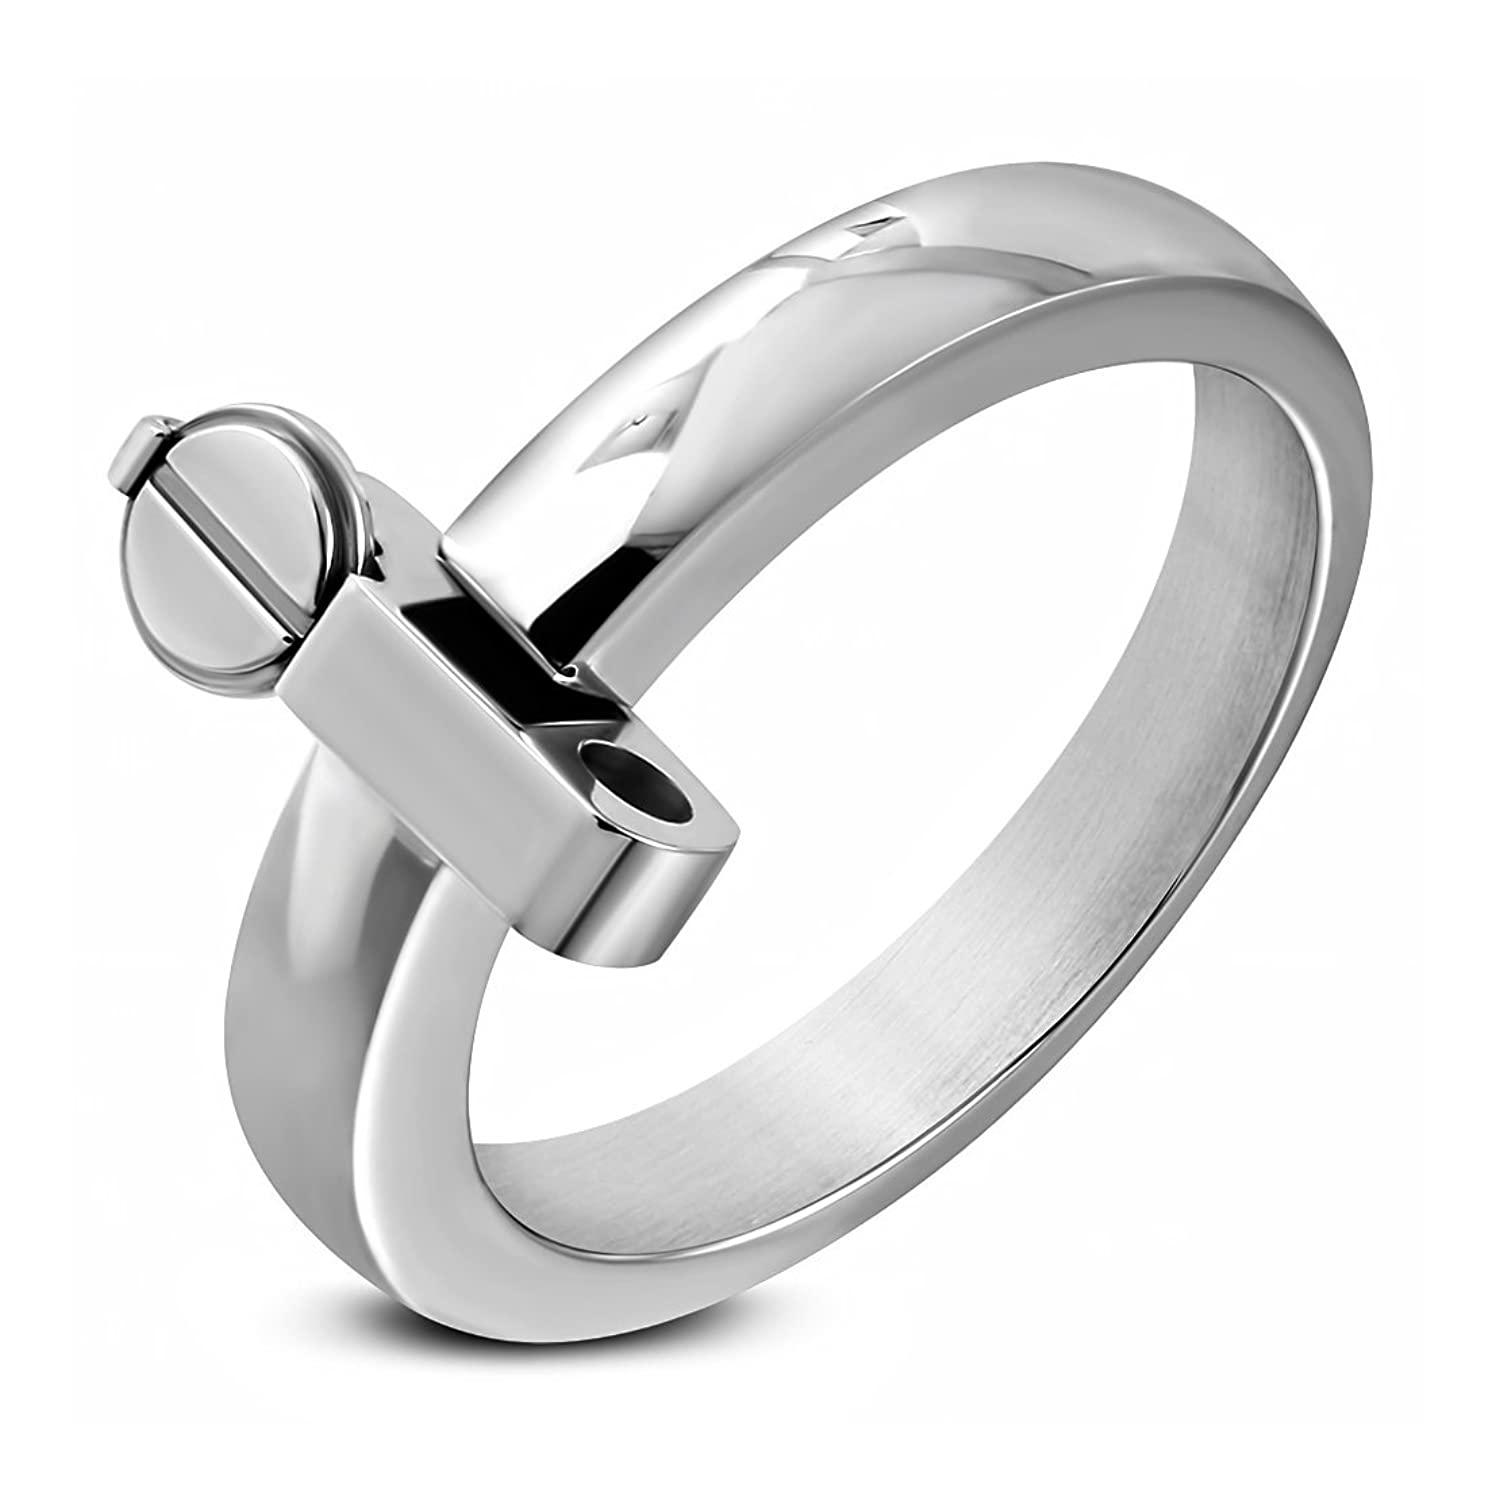 Stainless Steel Movable Screw Hinged Geometric Modern Ring